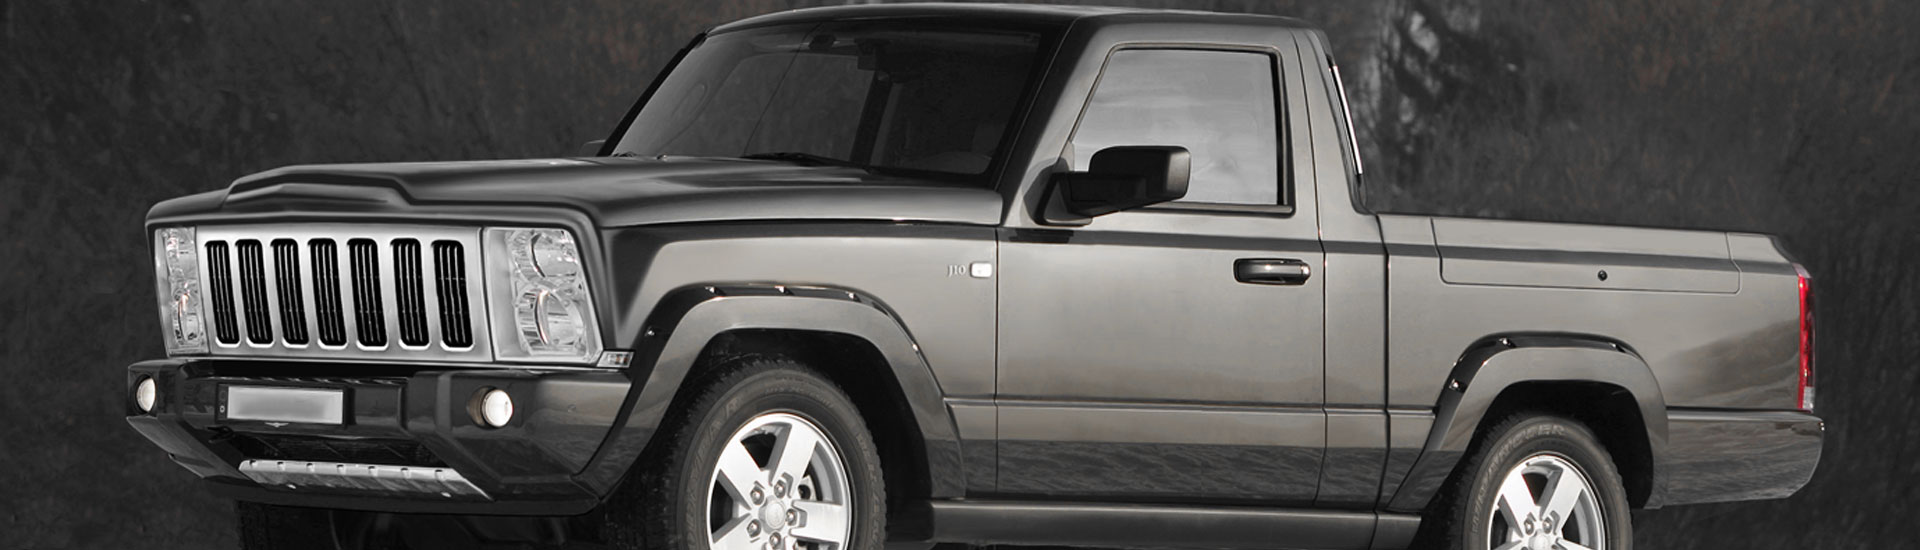 Jeep Comanche Window Tint